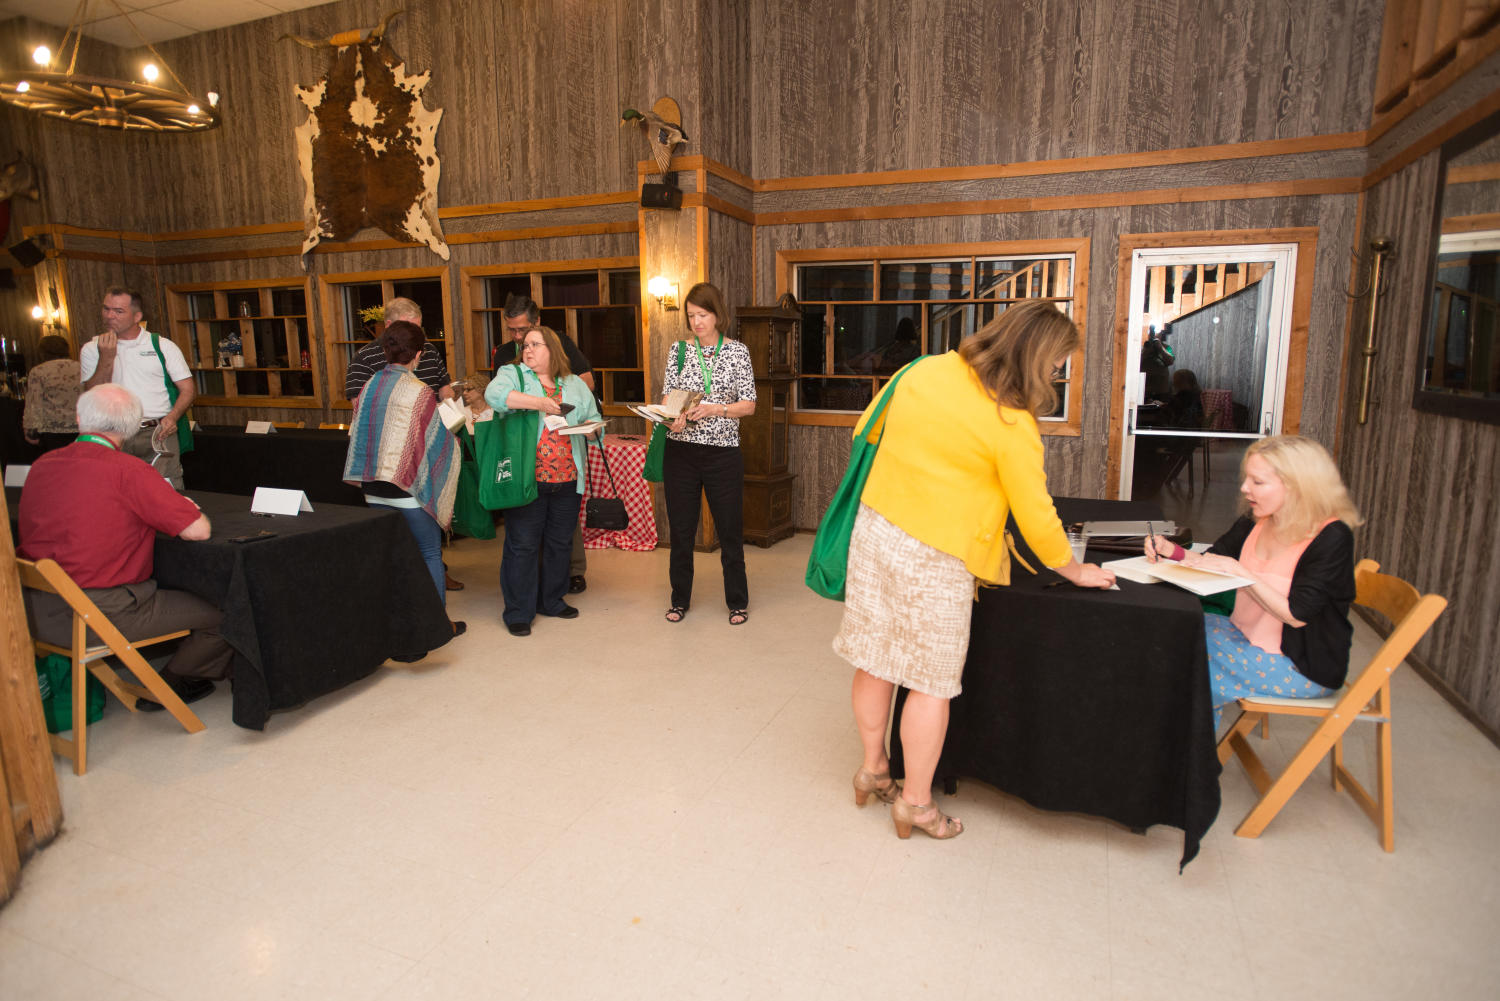 """[Book signings], Photograph of people having their books signed by the authors. Closest is Katherine Boo, author of """"Behind the Beautiful Forevers"""". The event was held during the Mayborn Literary Nonfiction Conference in the Austin Ranch Banquet Hall on the grounds of the Hilton DFW Lakes Executive Conference Center in Grapevine, TX.,"""